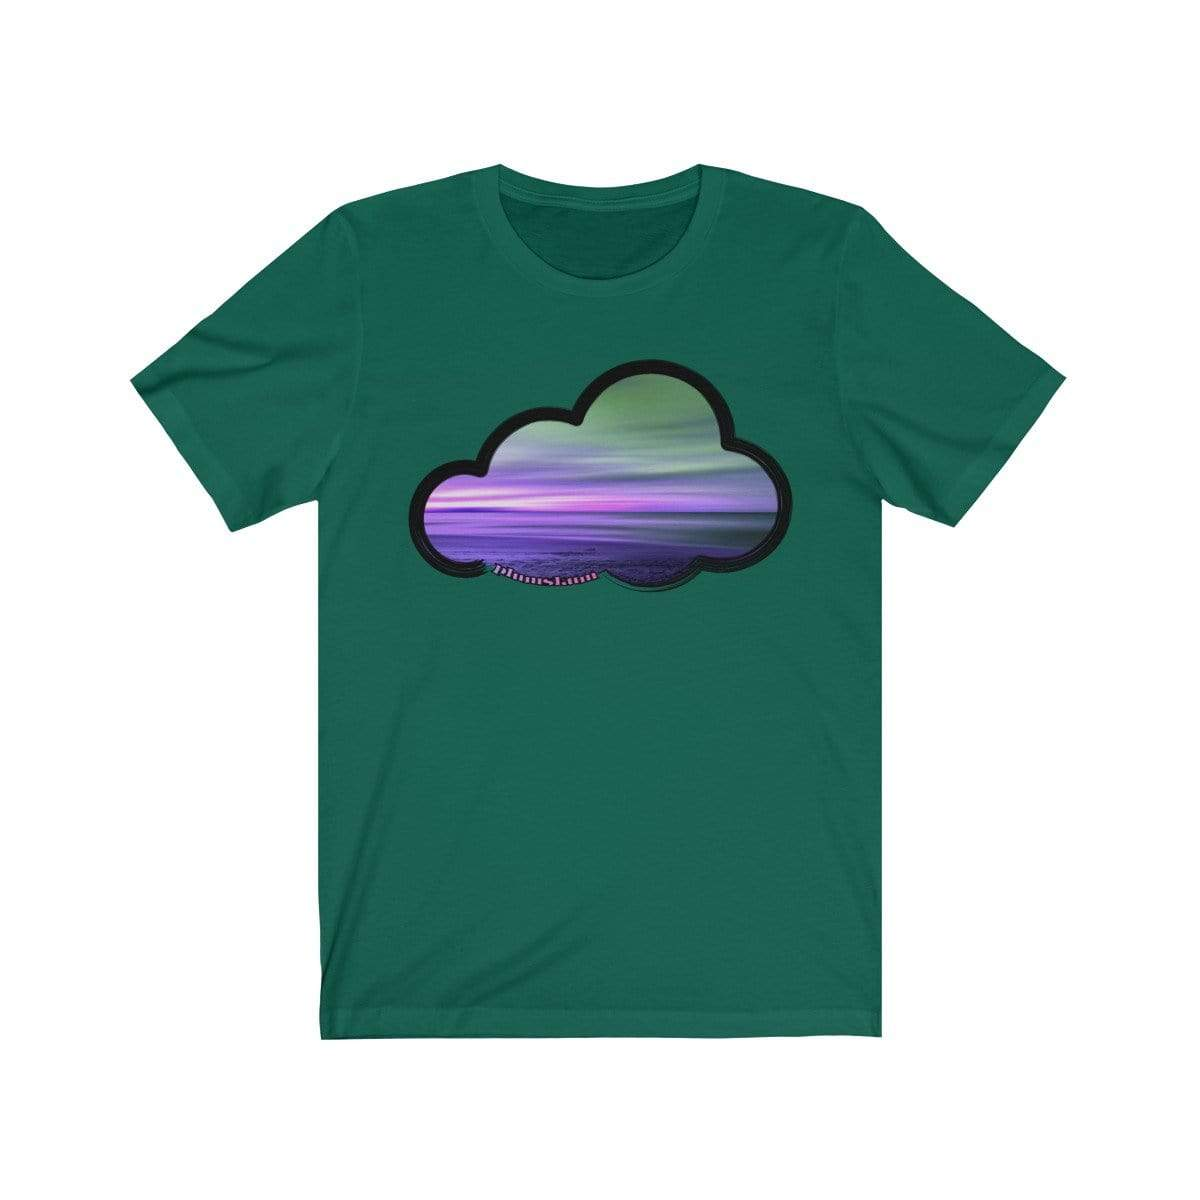 Printify T-Shirt Evergreen / M Beaches Art Clouds Tee